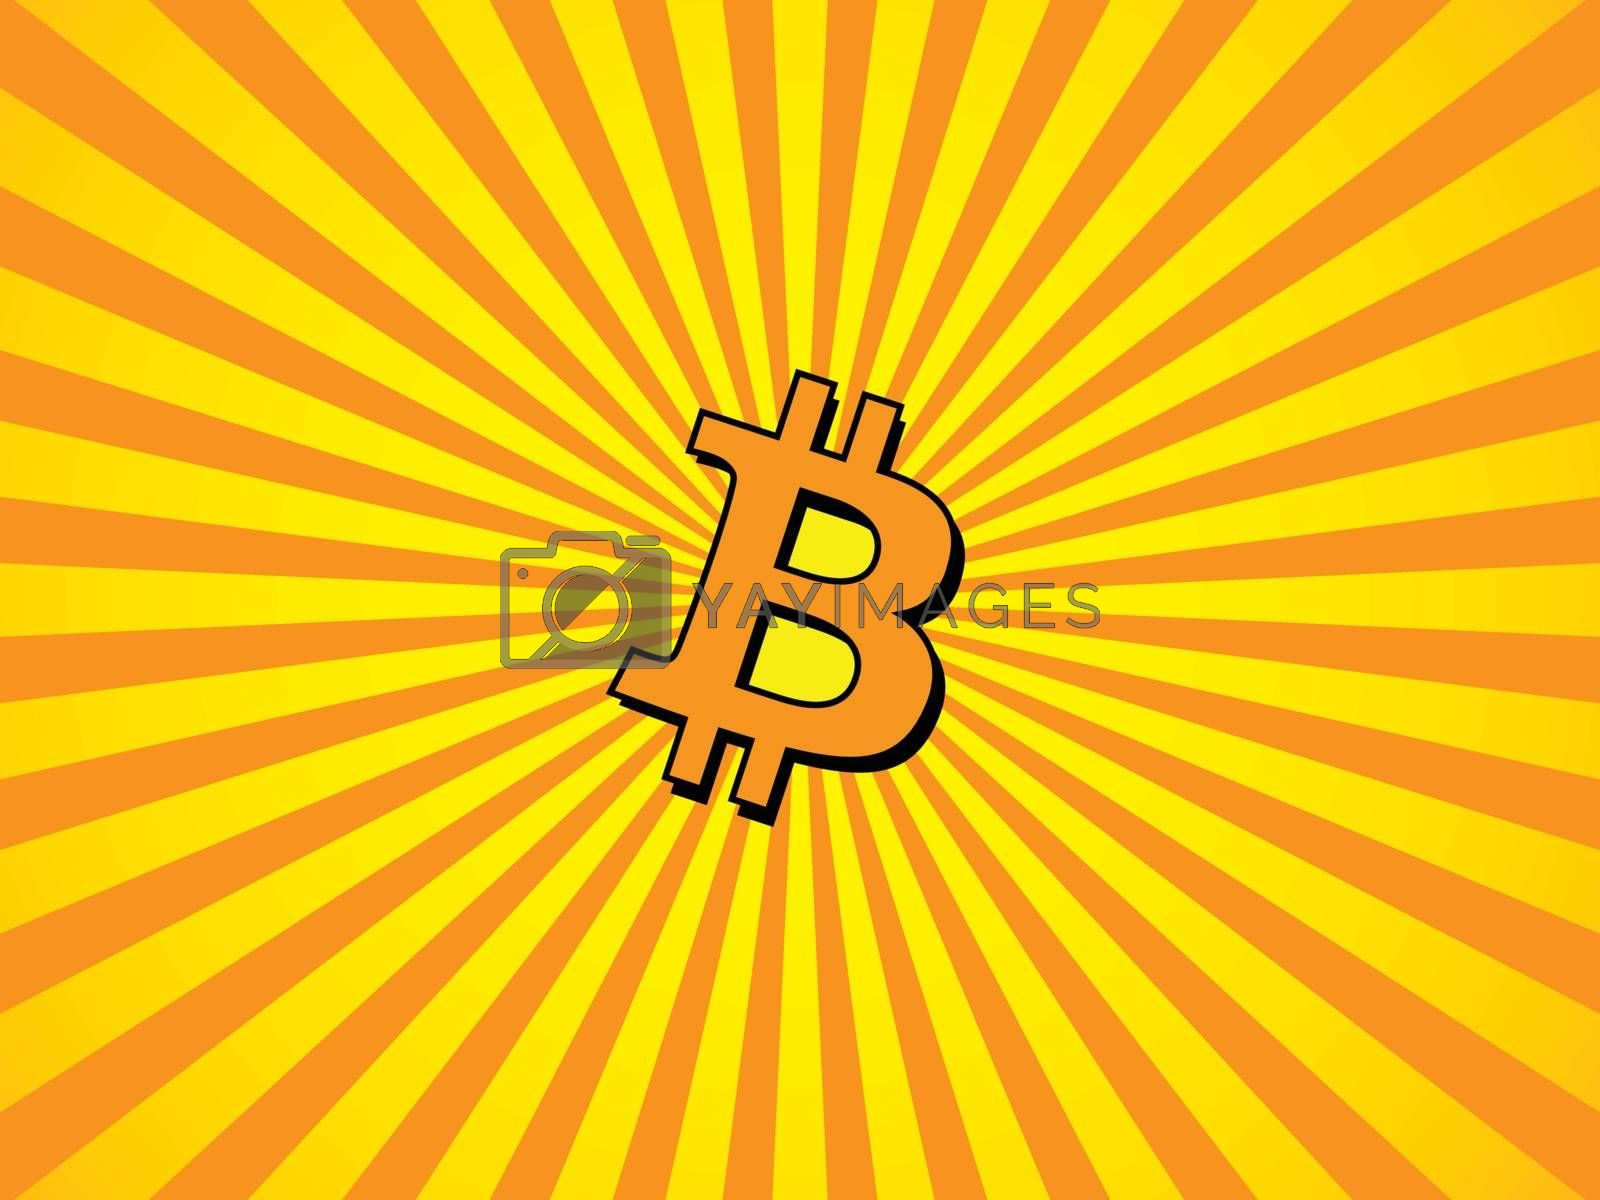 Orange-yellow rays background with Bitcoin symbol in the center. Beams of light focusing on the BTC sign in the middle of the background.